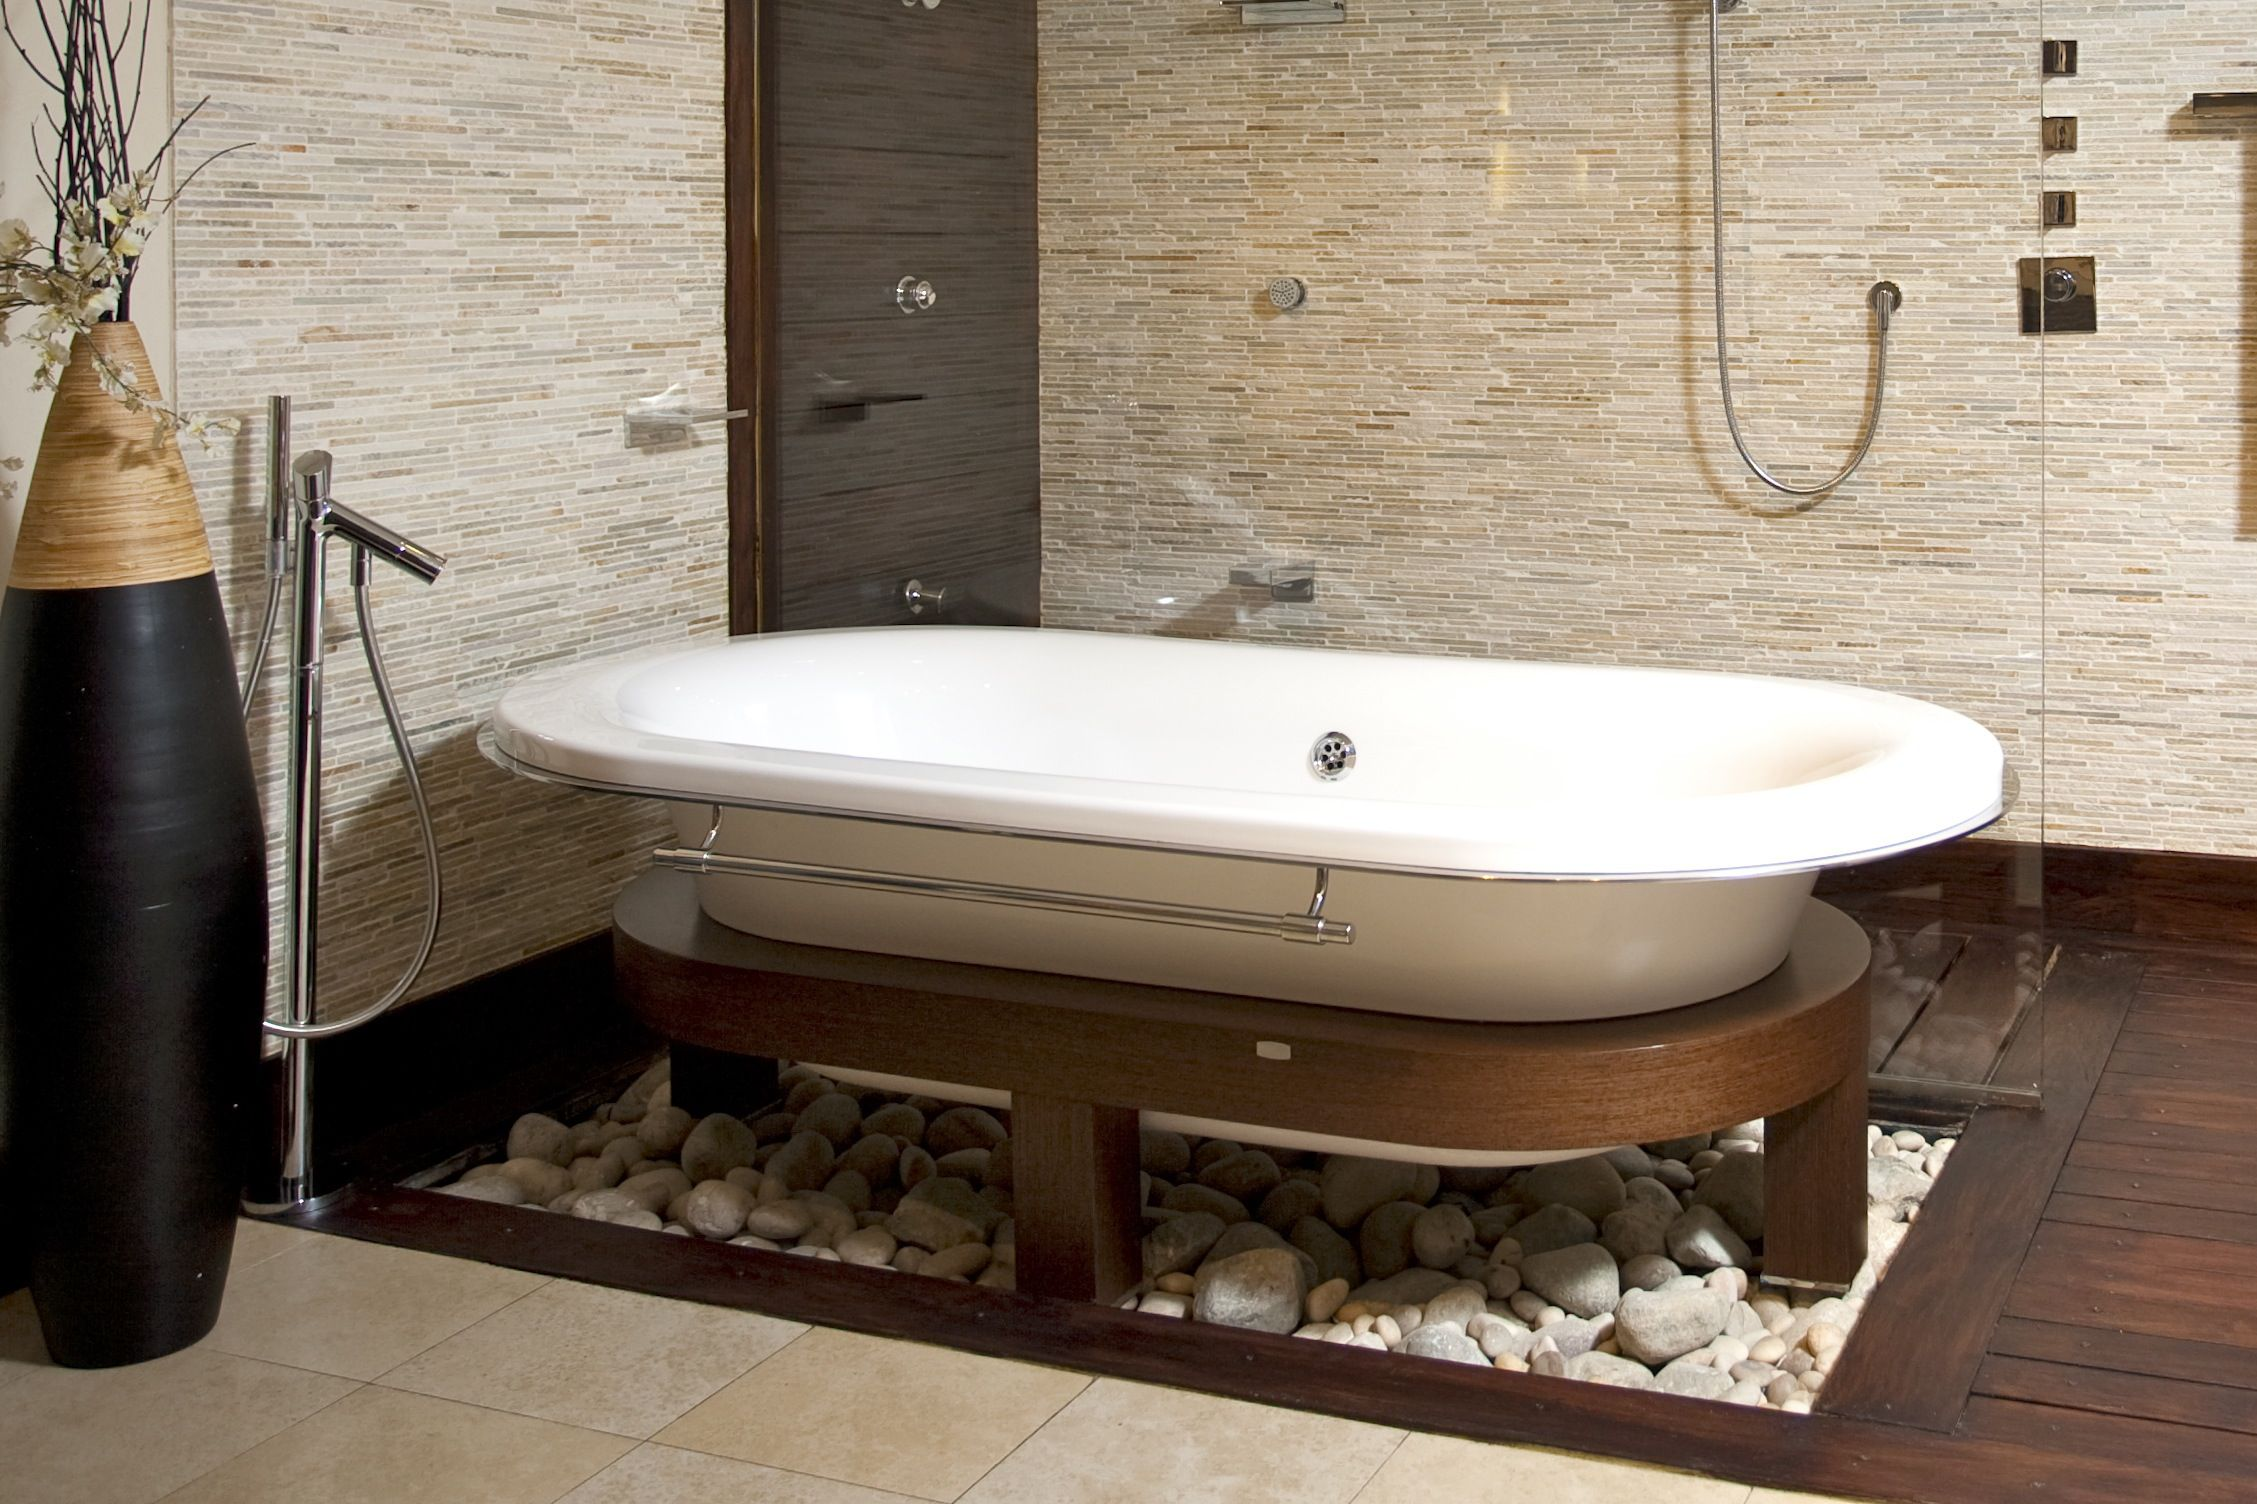 Wooden and Stone Bathroom Flooring Ideas